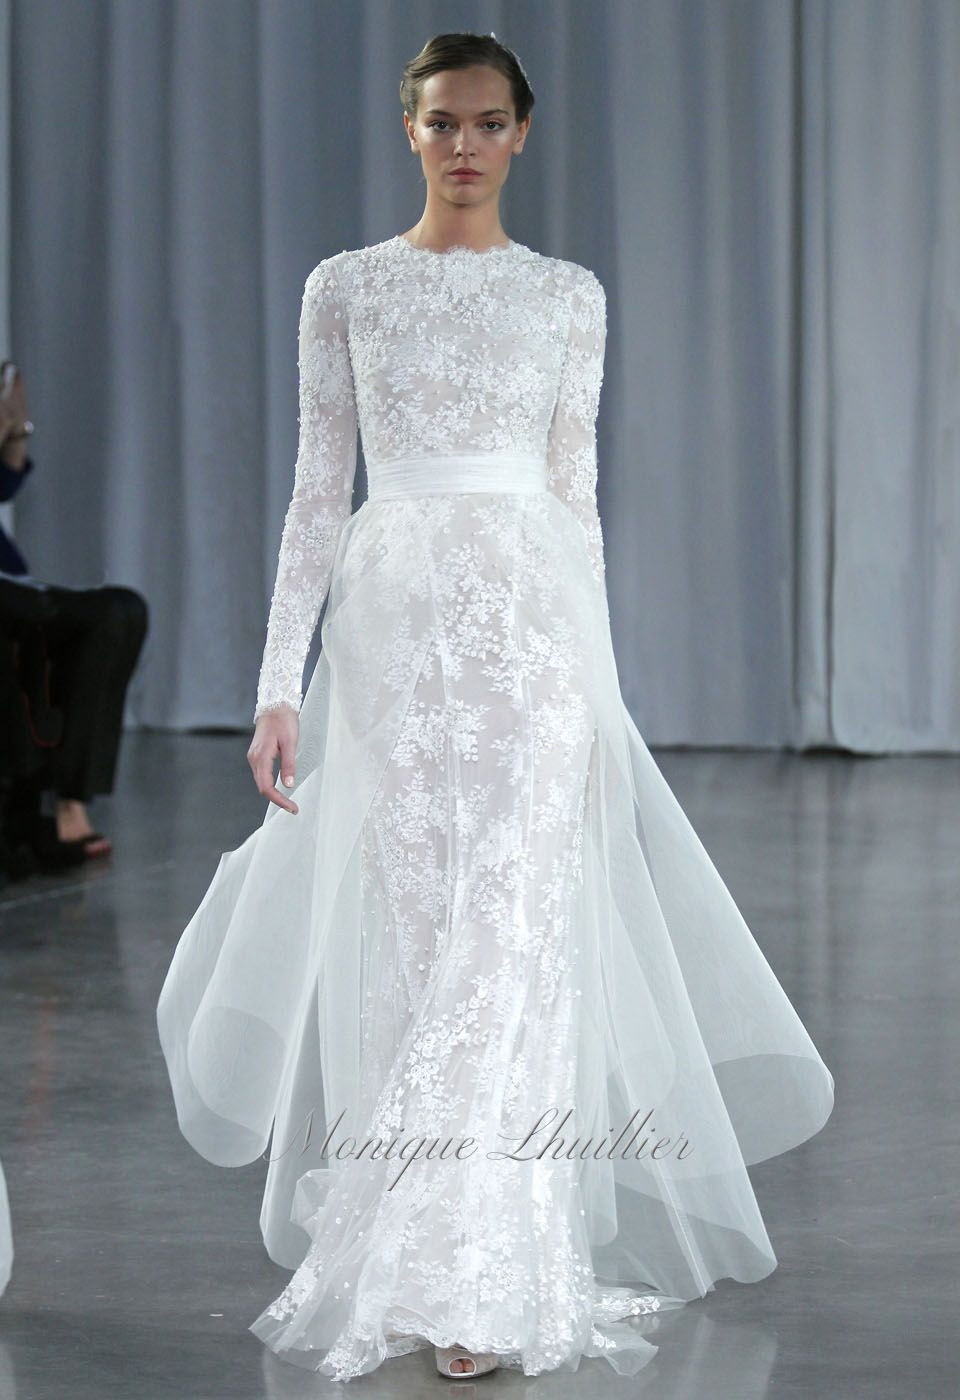 Silk White Chantilly Lace Embroidered Long Sleeve Column Gown Silk Monique Lhuillier Bridal Sleeves Wedding Dress Long Sleeve Monique Lhuillier Wedding Dress